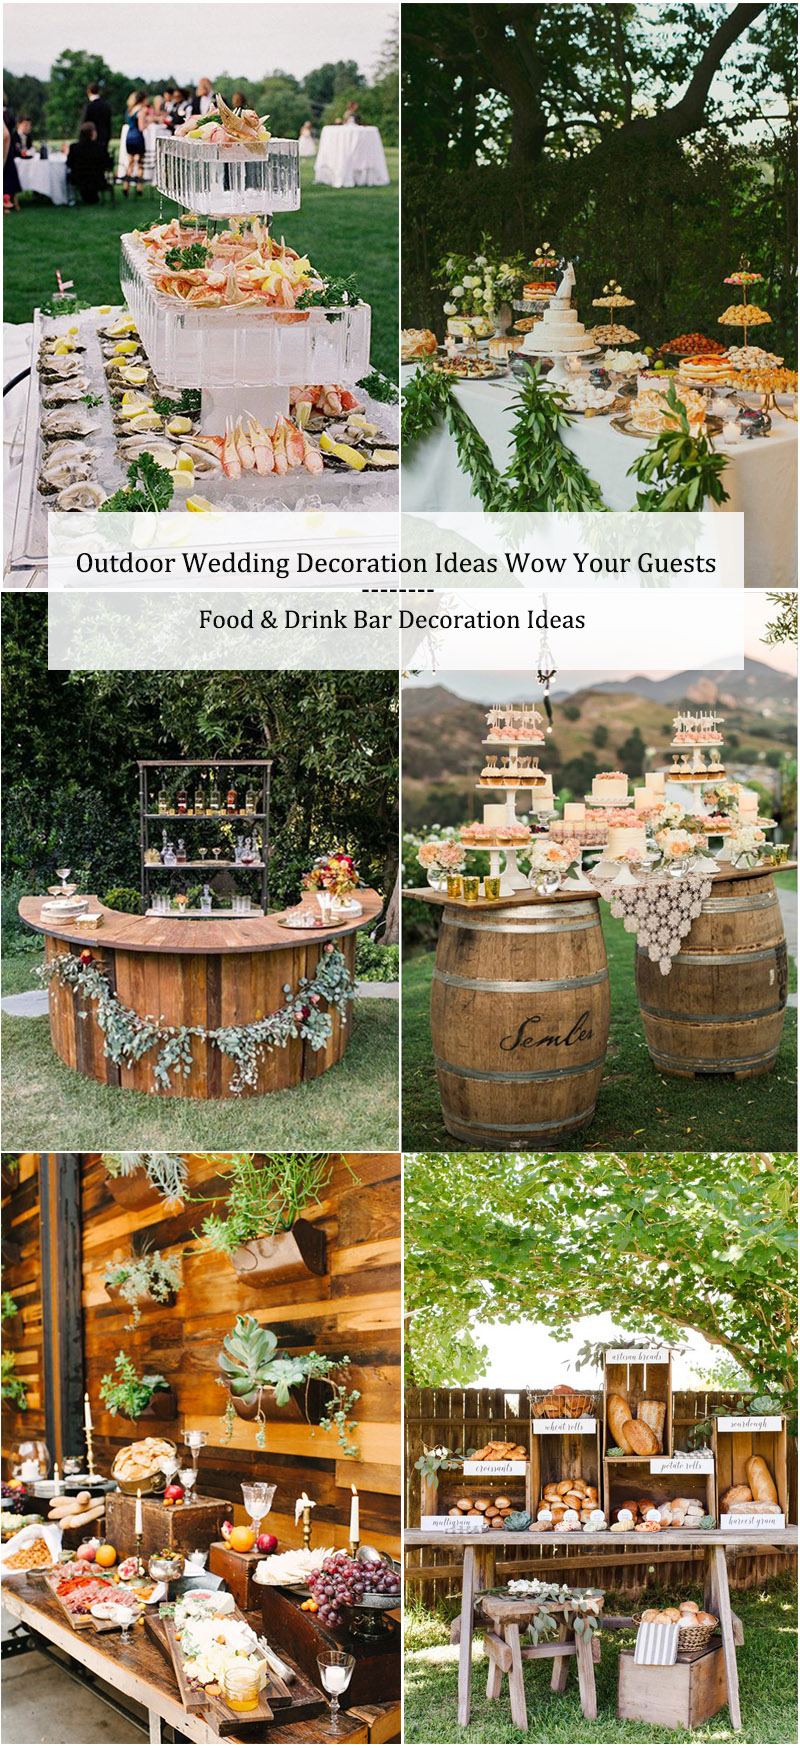 Outdoor Wedding Decoration Ideas-Food & Drink Bar Decoration Ideas